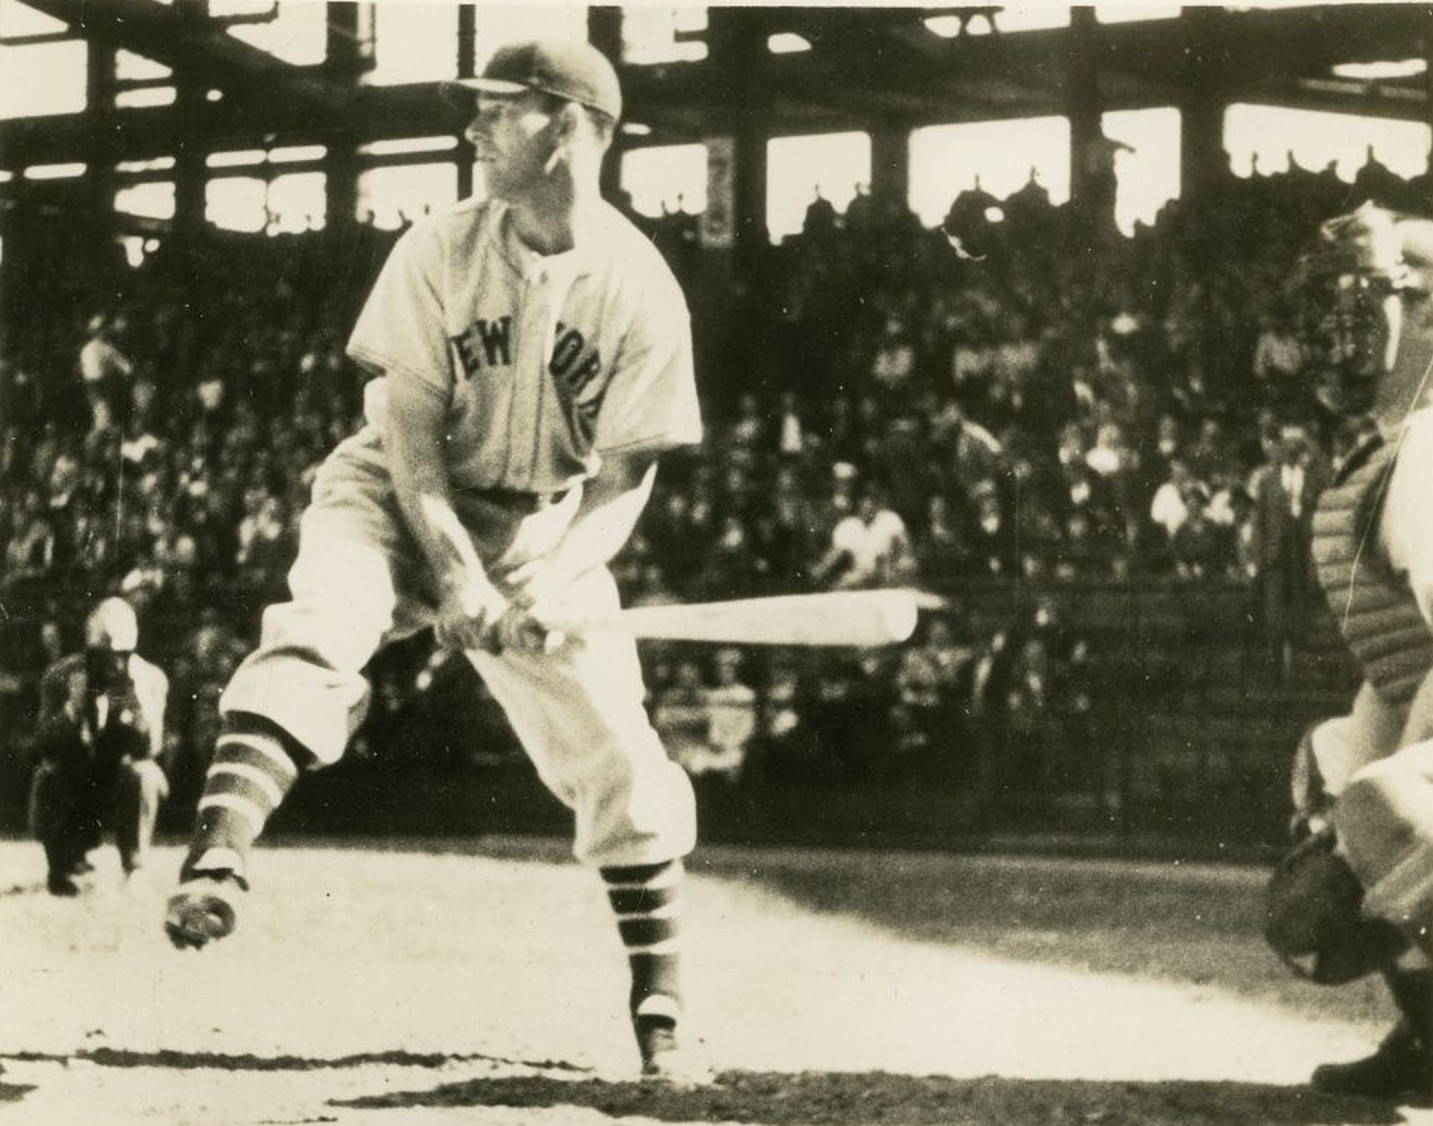 Mel Ott Rare Batting Photos